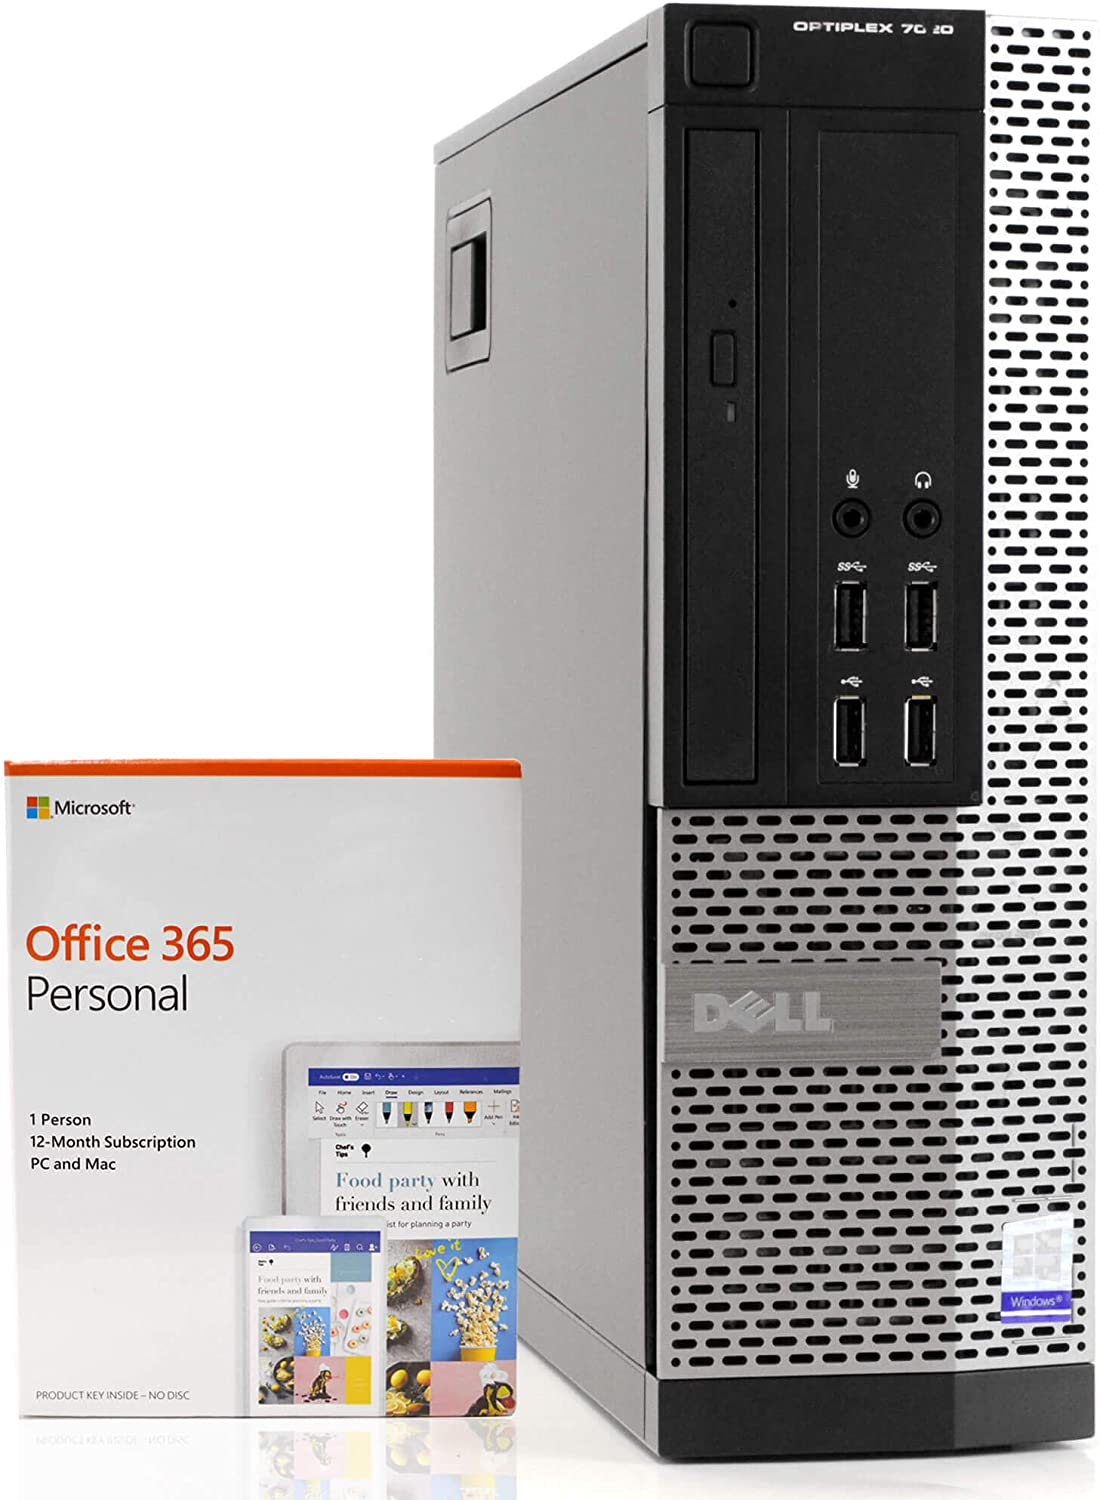 Dell OptiPlex 7020 Small Form Space Saving PC Desktop Computer, Intel i5-4590 3.3GHz, 8GB RAM 500GB Hard Drive, Windows 10 Pro, Microsoft Office 365 Personal, New 16GB Flash Drive, DVD, WiFi (Renewed)